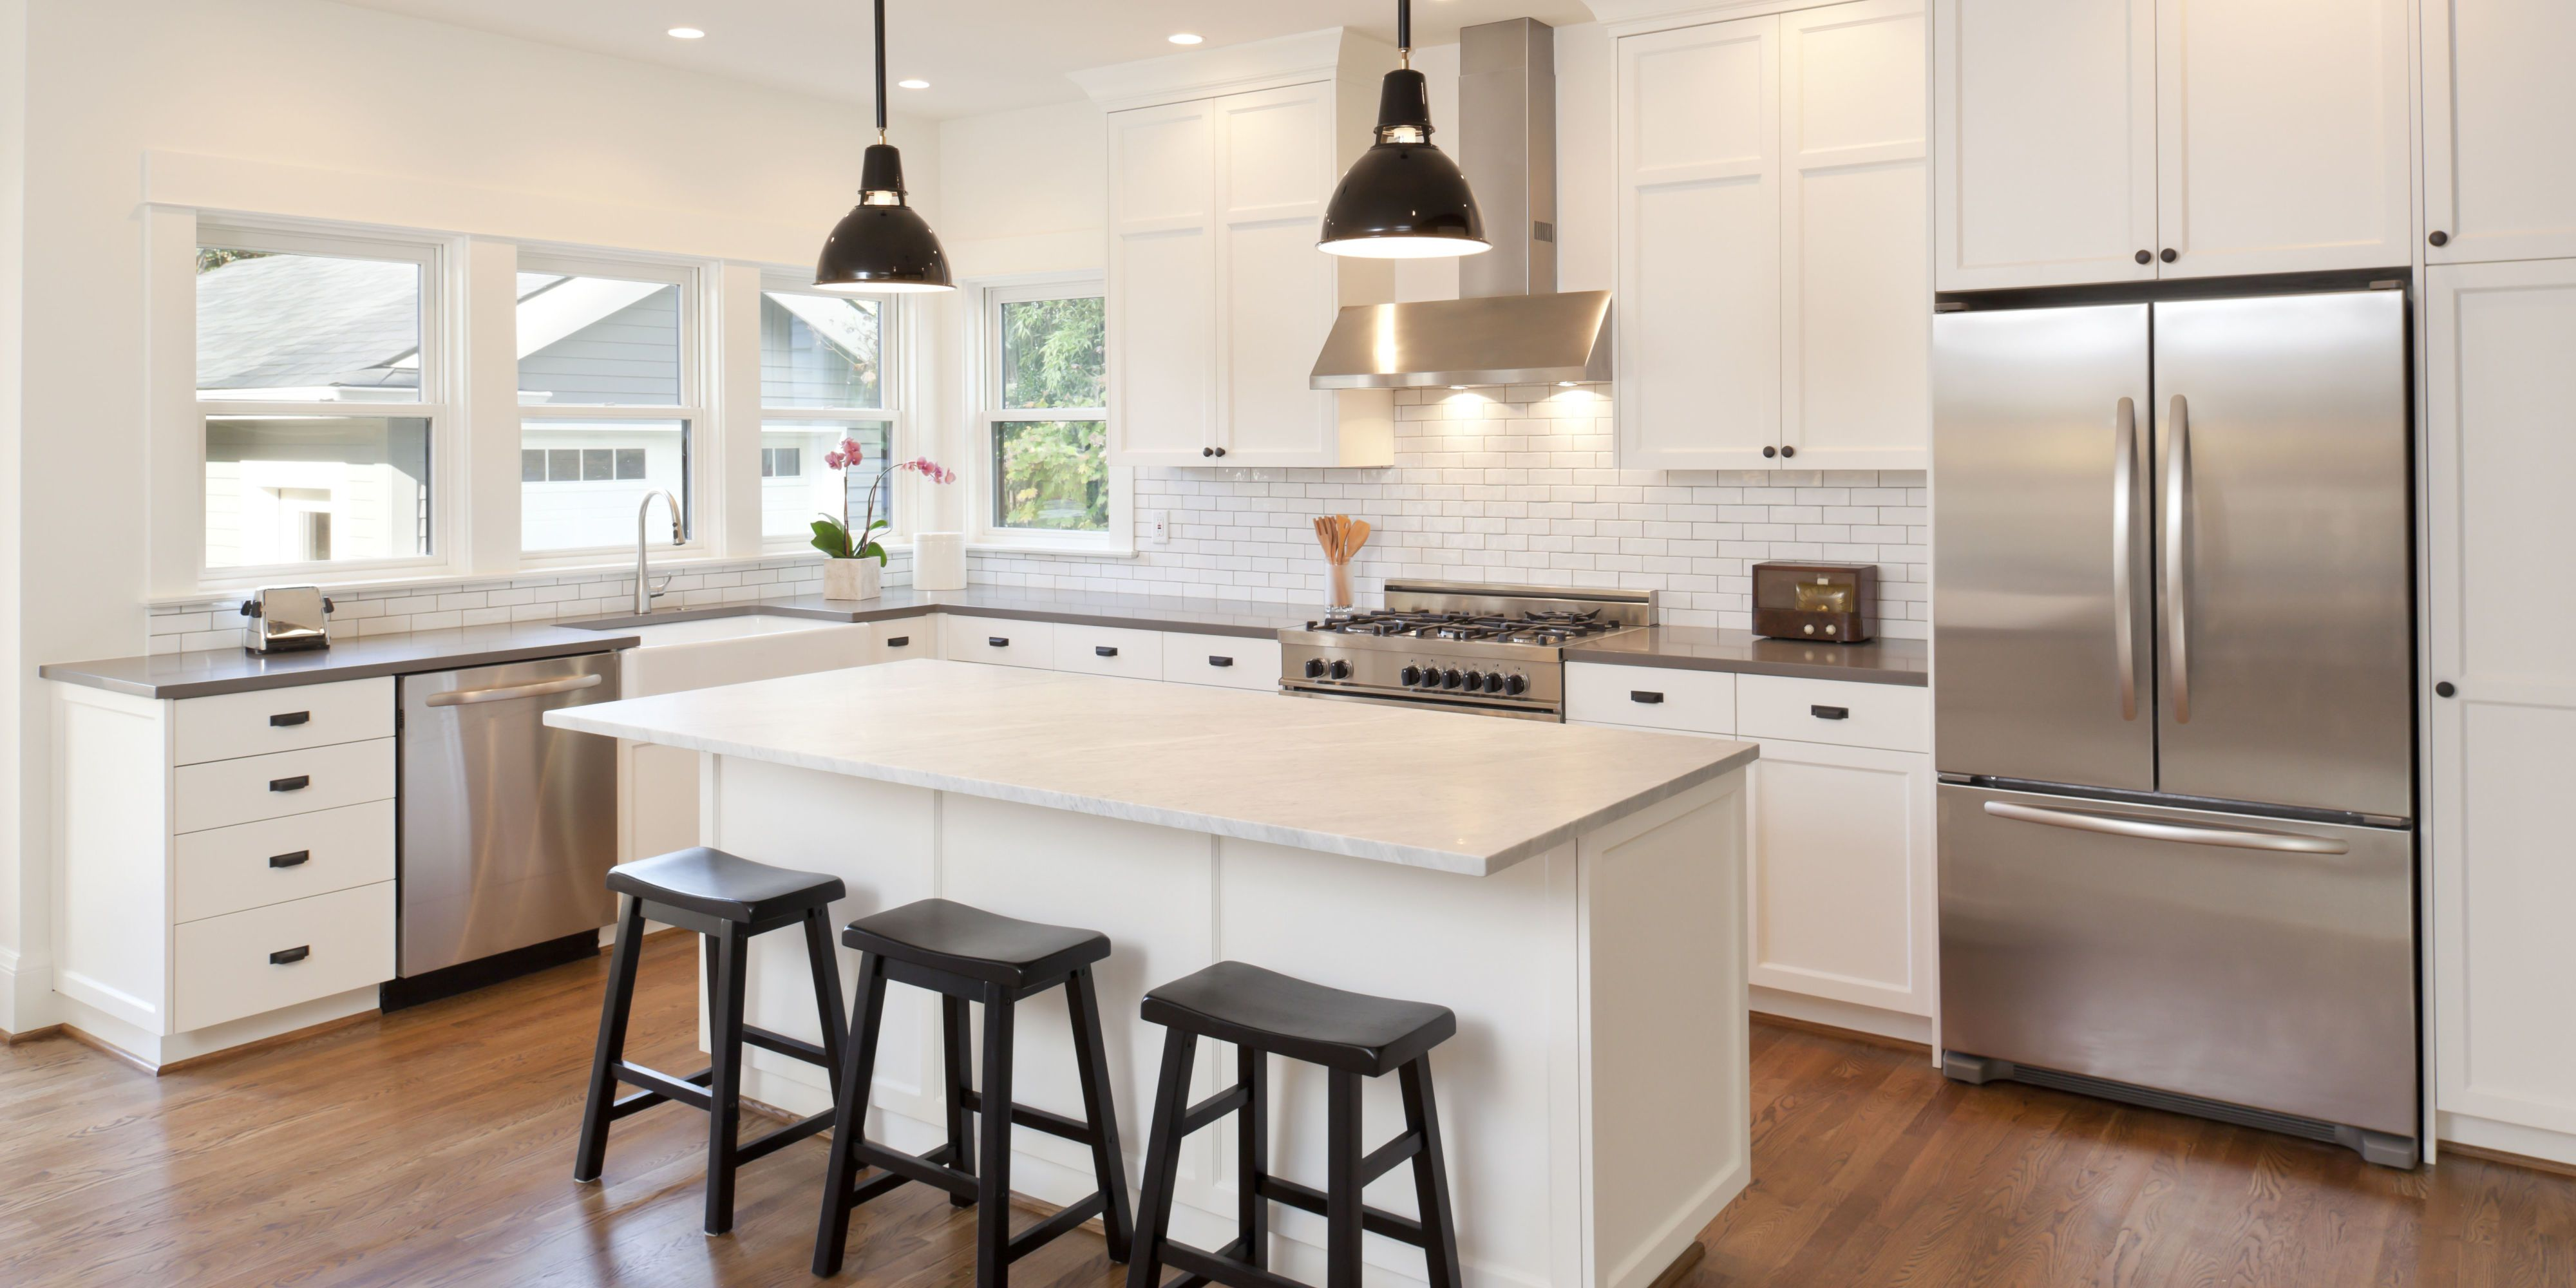 Beautiful From Metal To Wood, These Are The Best Picks For Your Newly Renovated  Kitchen.